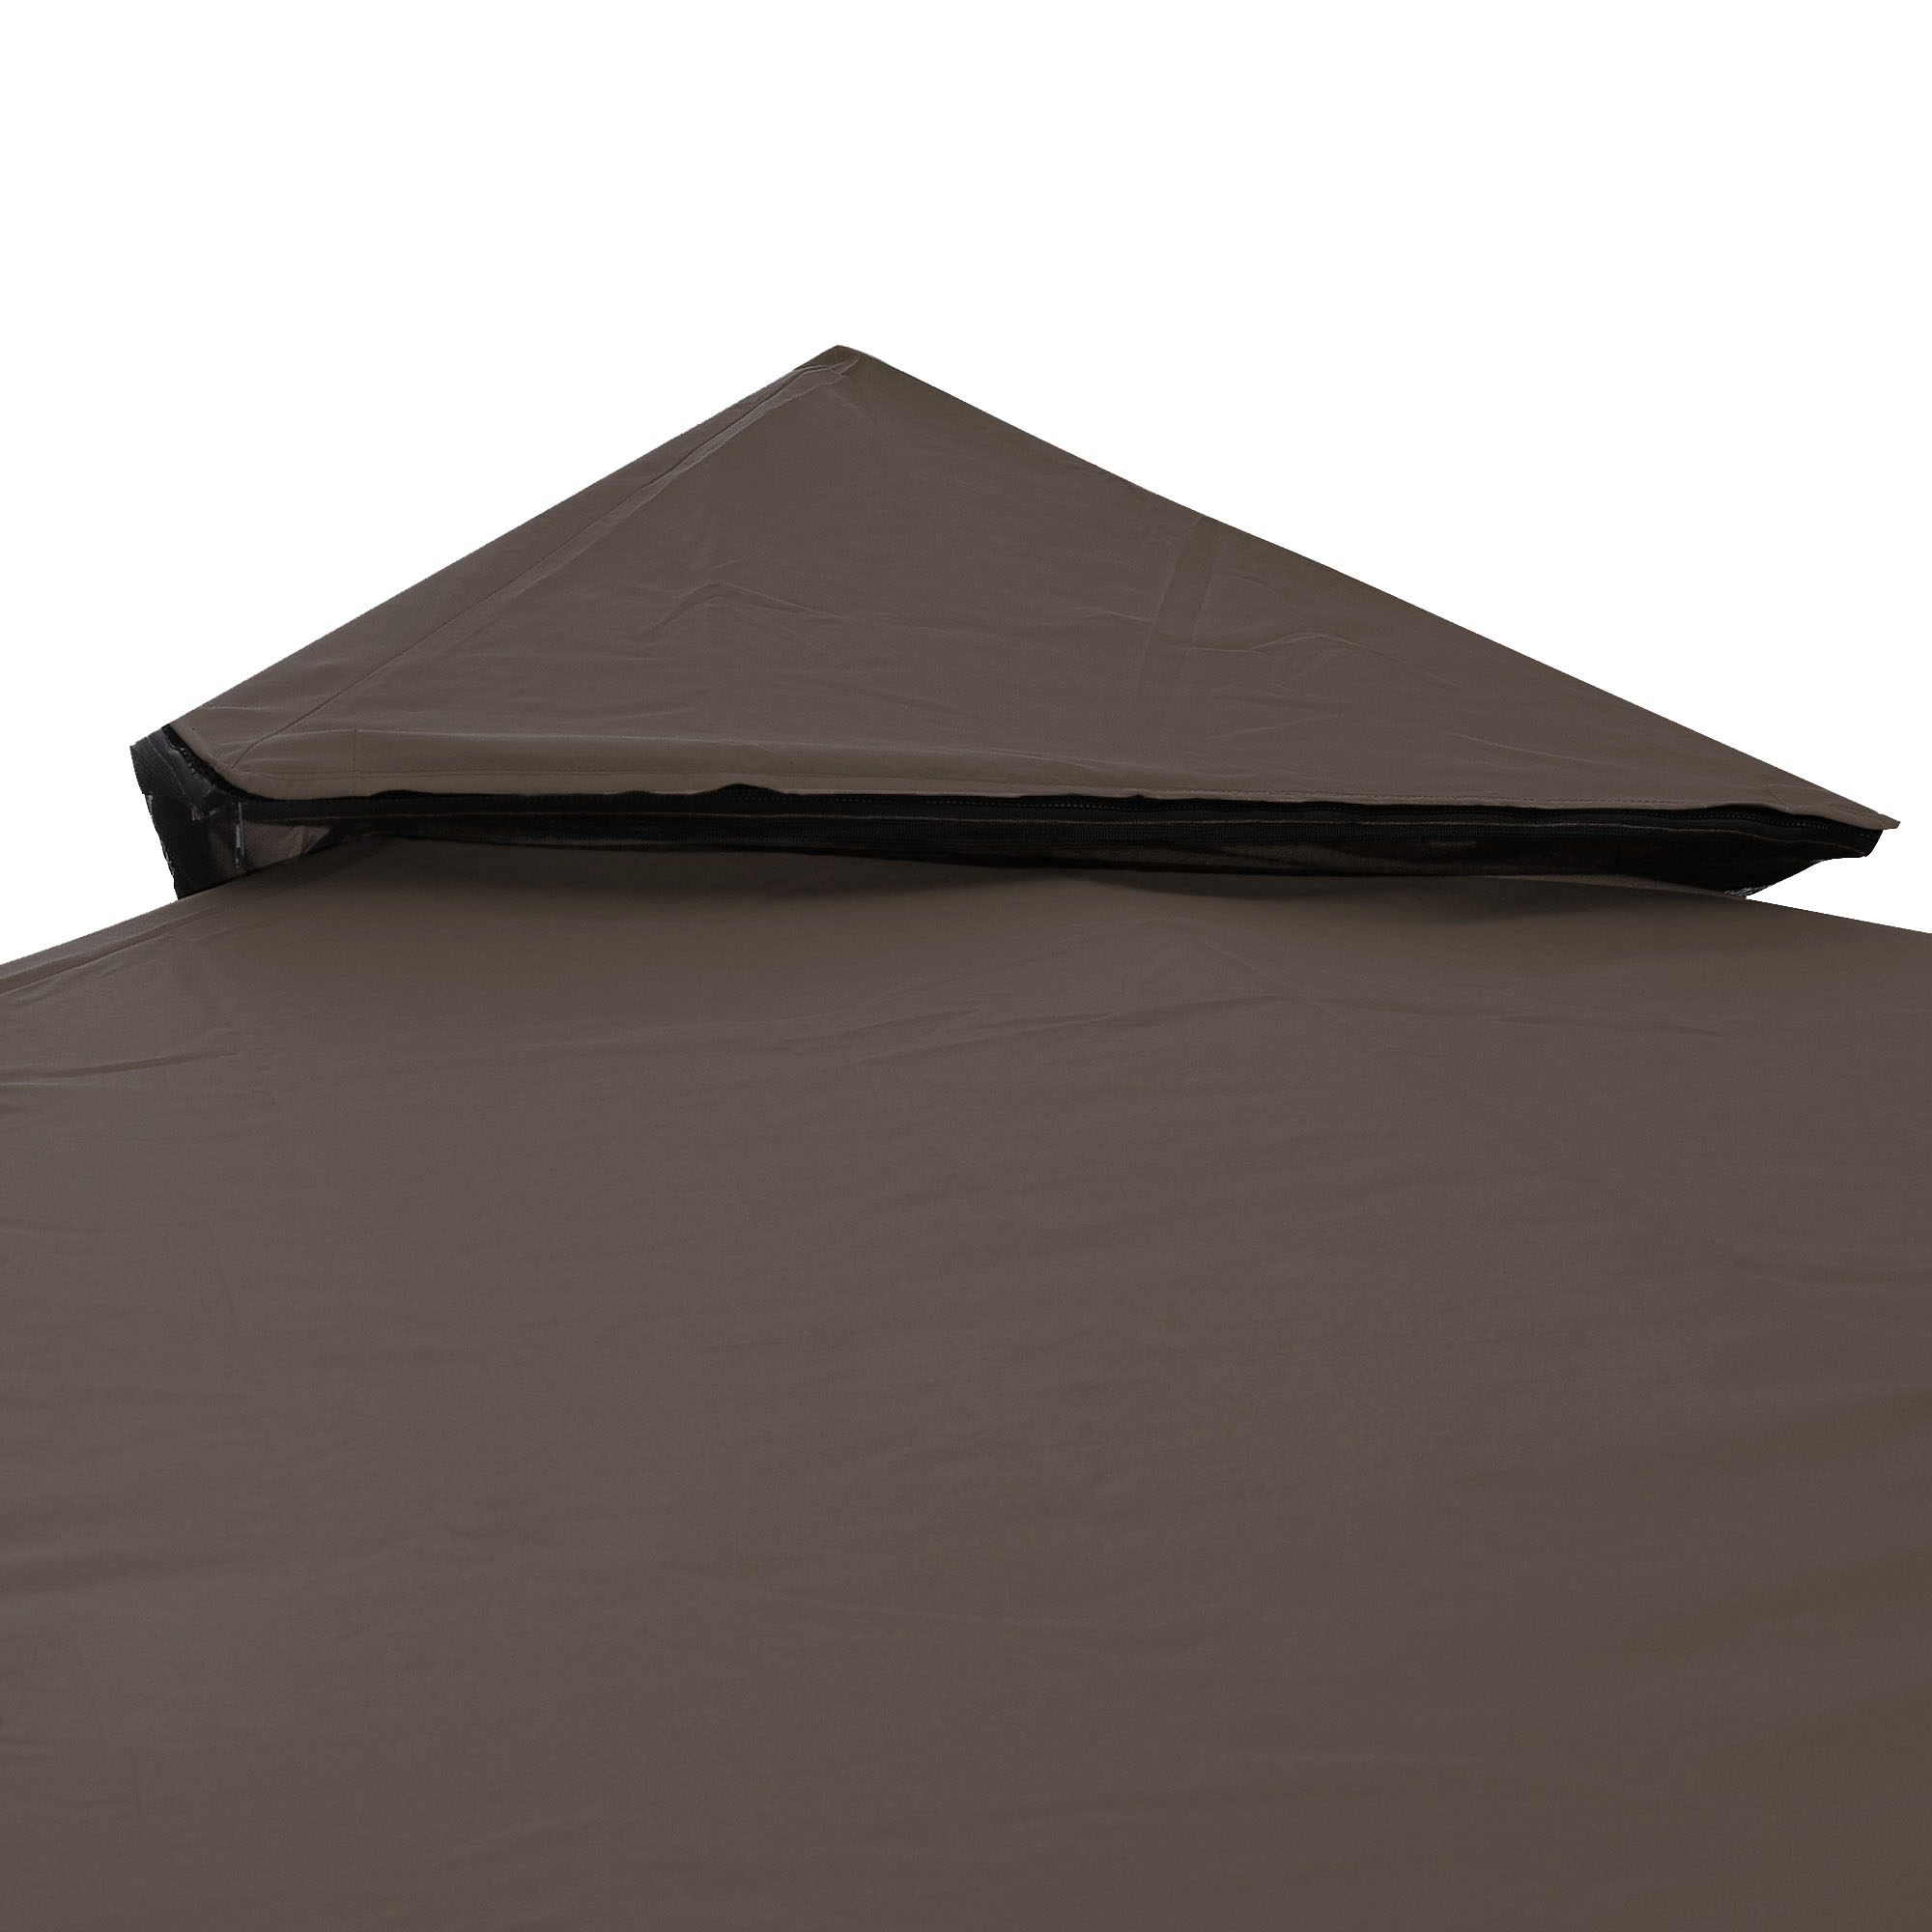 8x8-039-10x10-039-12x12-039-Gazebo-Top-Canopy-Replacement-UV30-Patio-Outdoor-Garden-Cover thumbnail 91